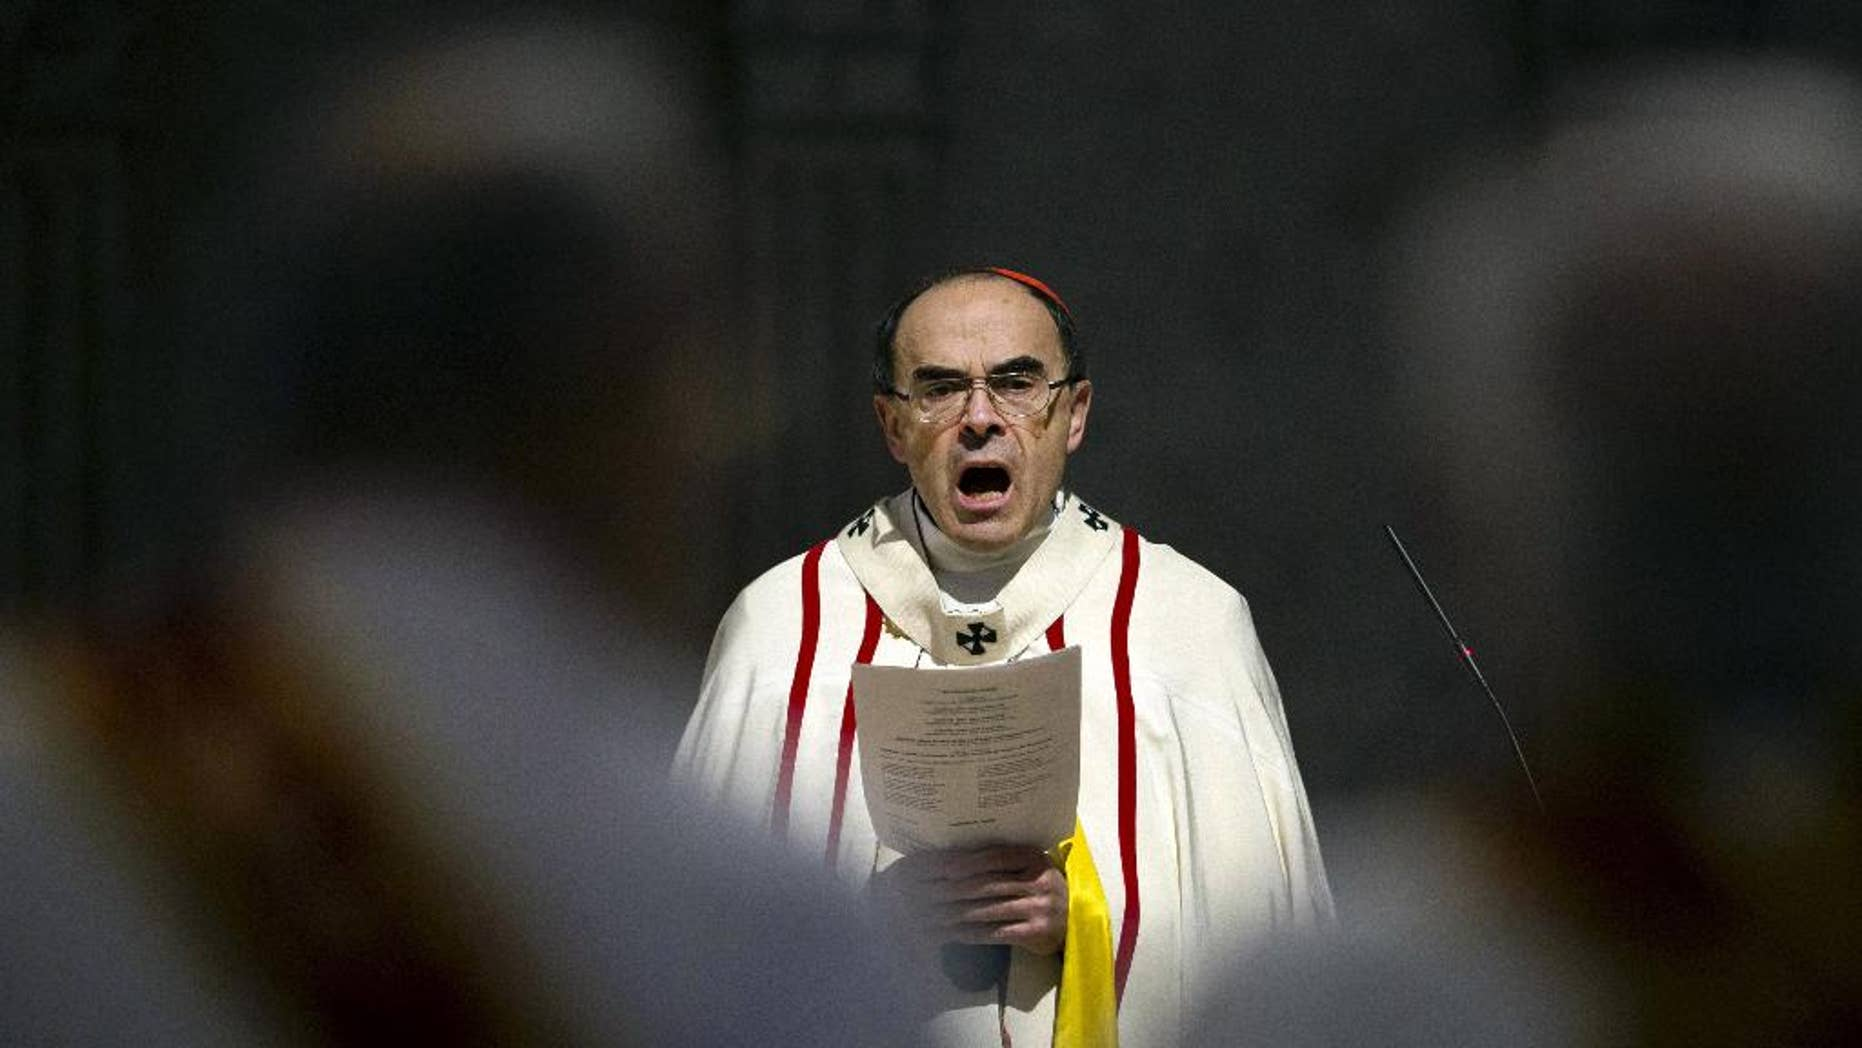 FILE - In this April 3, 2016 photo, French Cardinal Philippe Barbarin, Archbishop of Lyon, leads a mass for migrants, in Lyon, central France. Police are questioning a prominent French cardinal about alleged failure to report pedophile priests under his watch. (AP Photo/Laurent Cipriani, File)